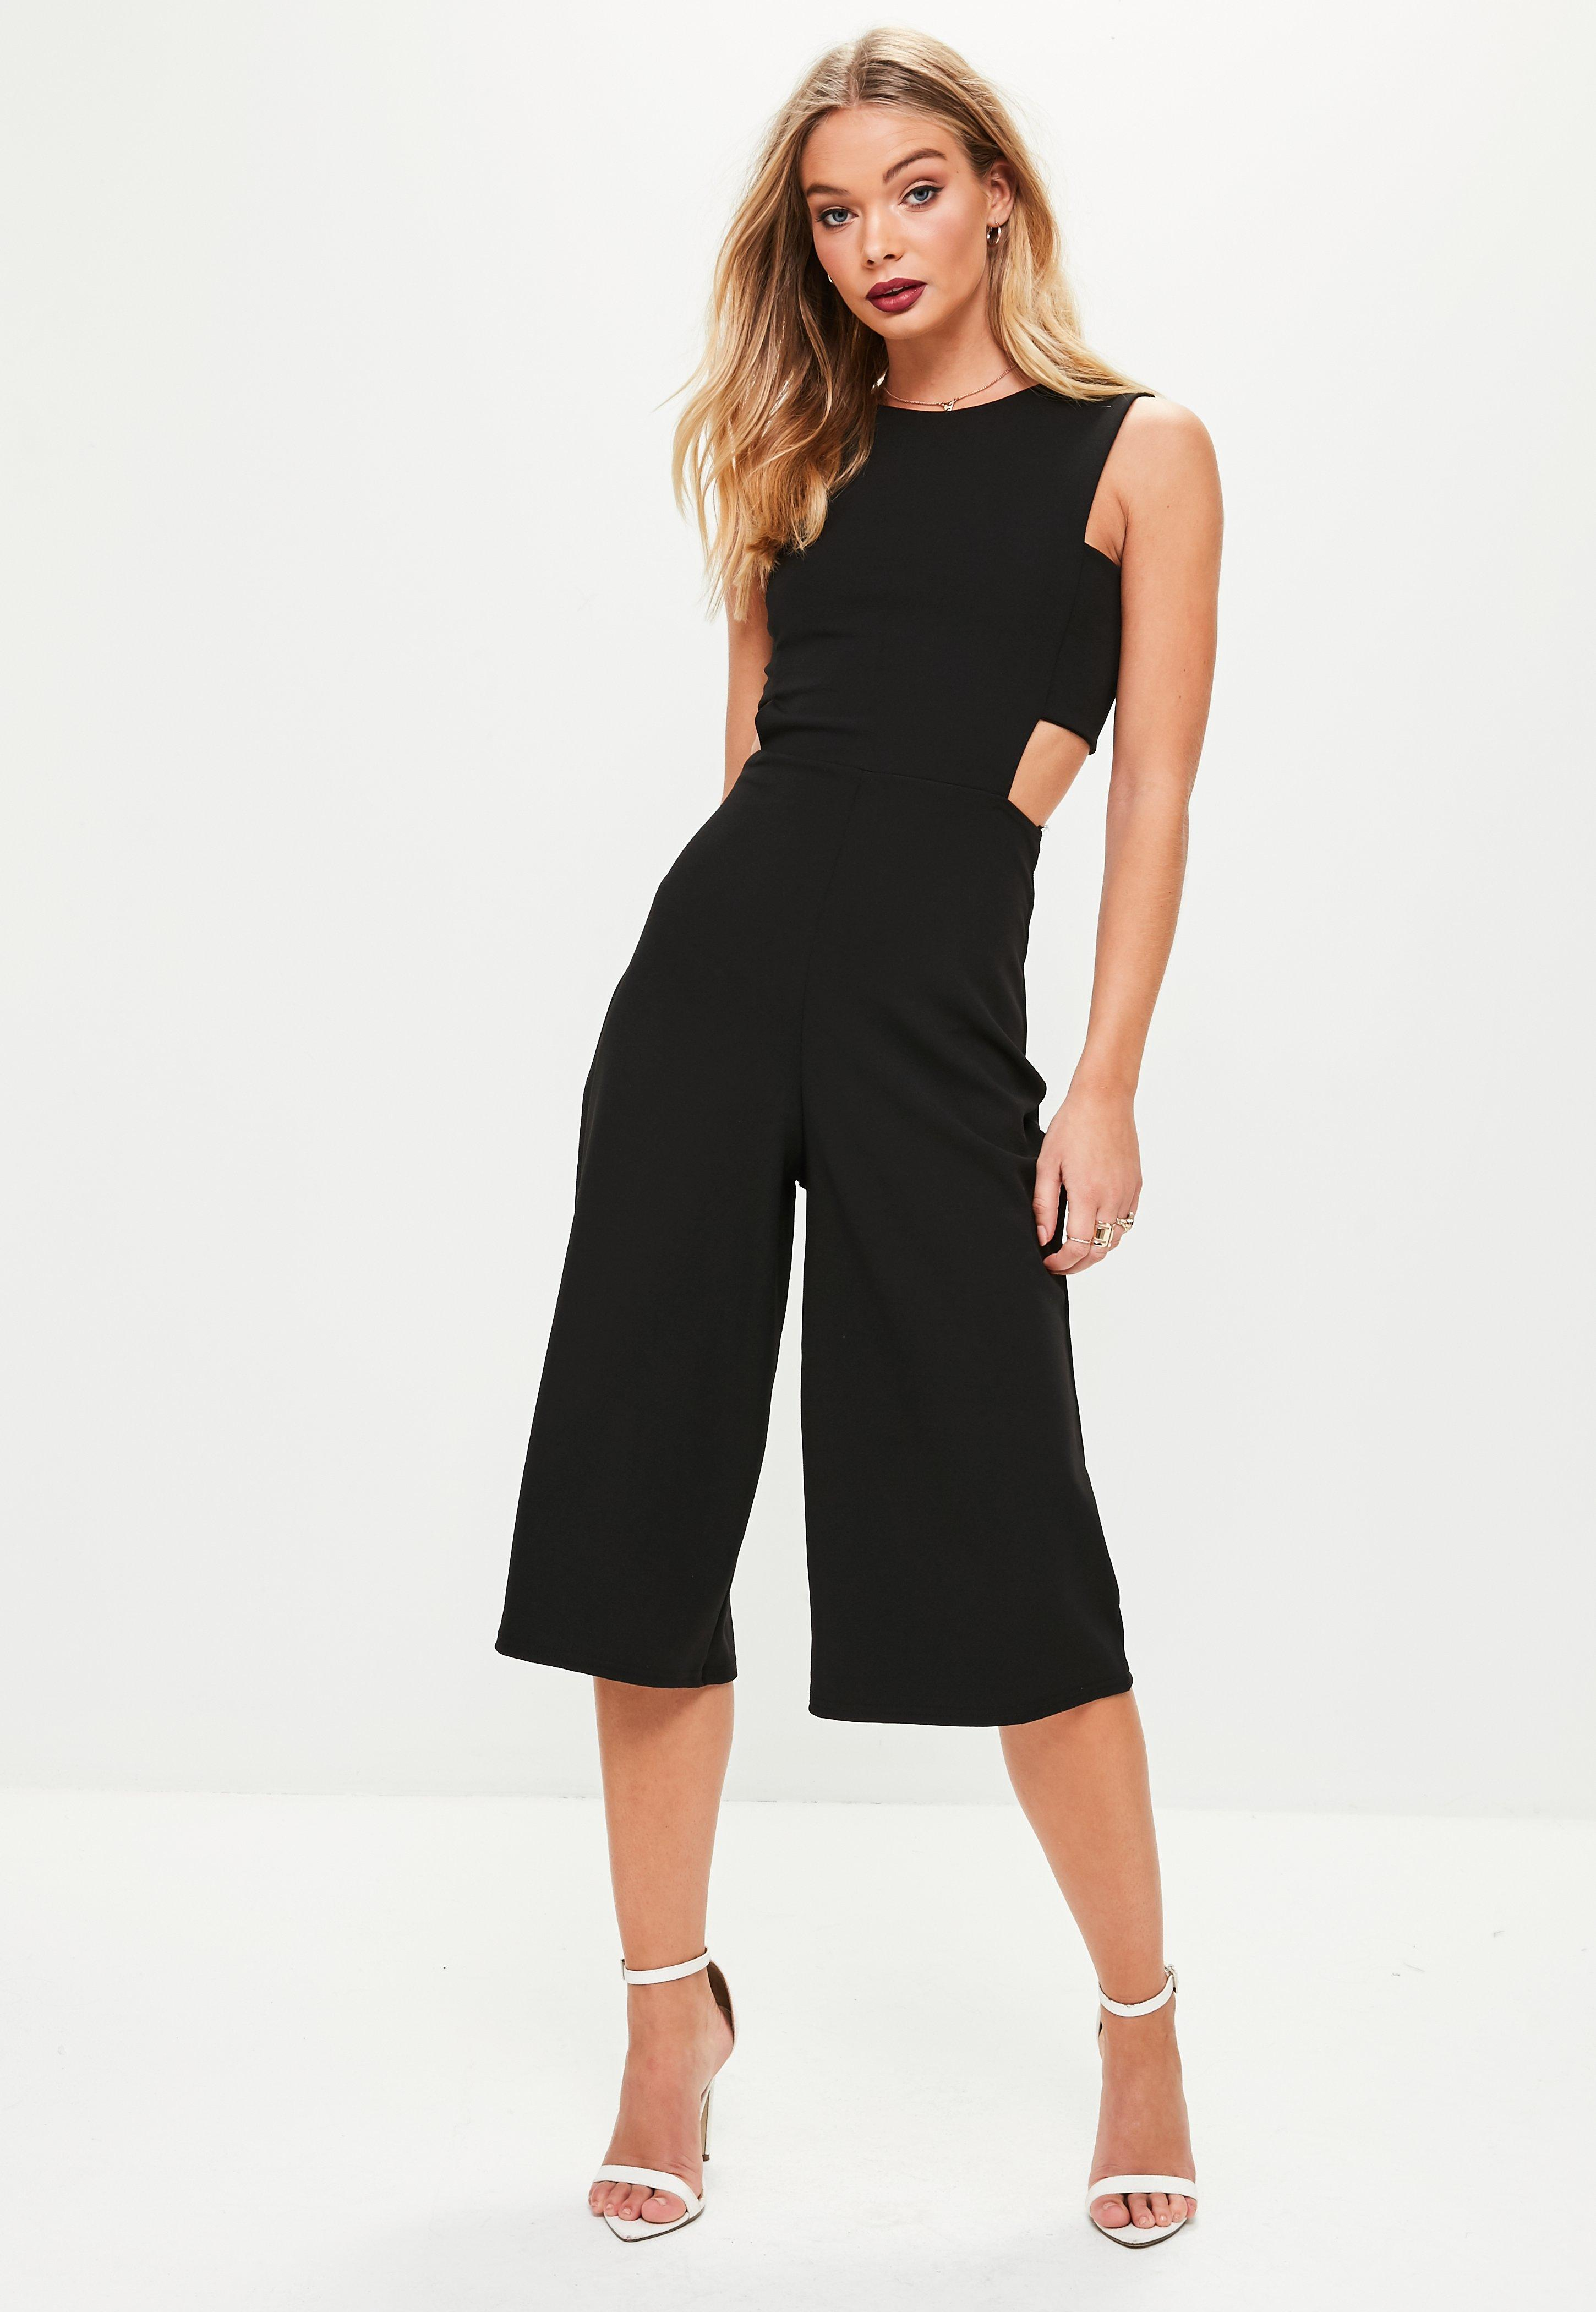 530f05331f6c Lyst - Missguided Black Tab Side Culotte Jumpsuit in Black - Save 2%